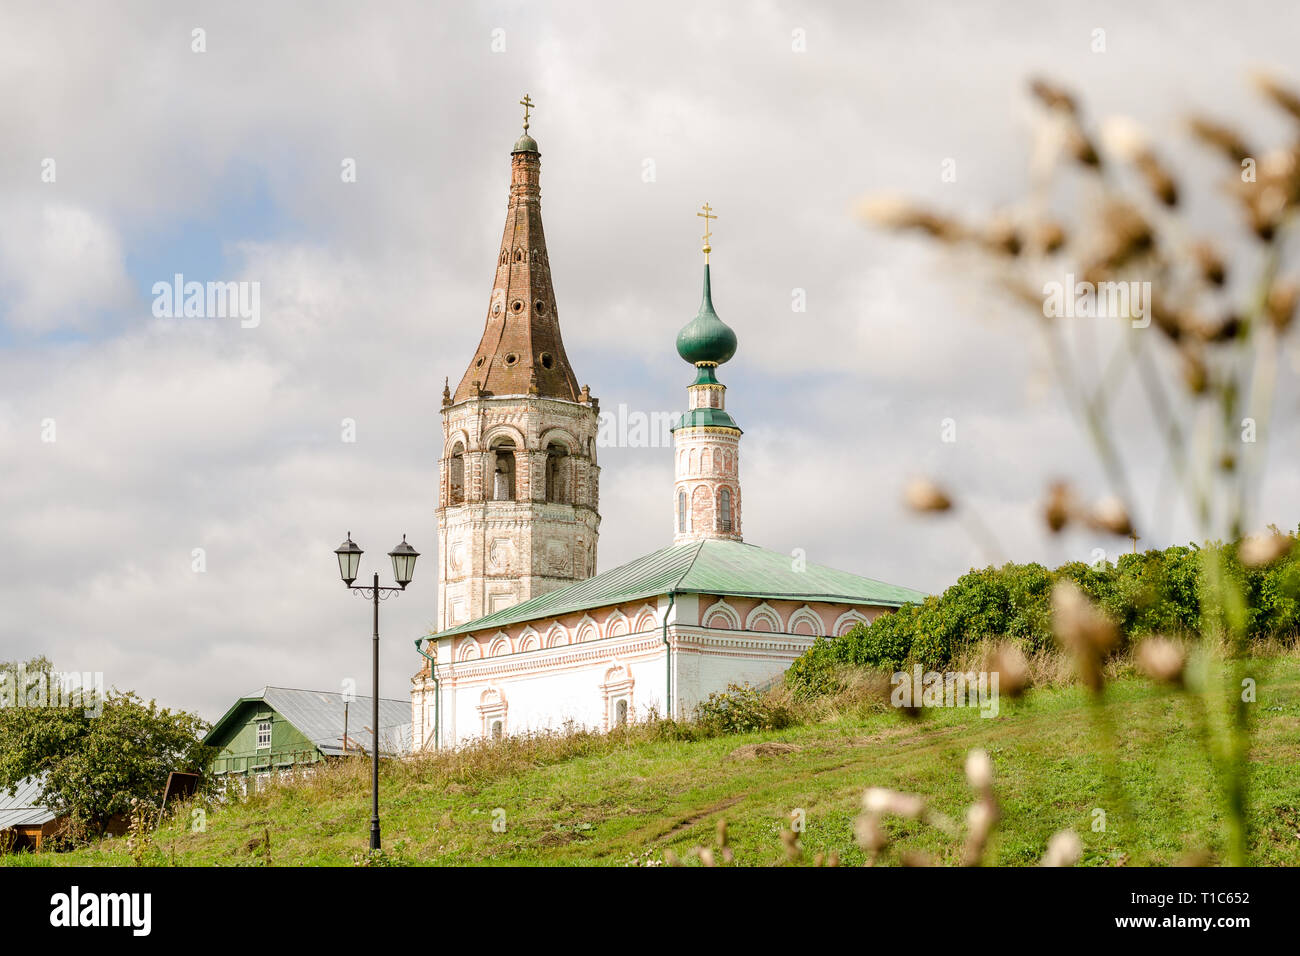 The Orthodox Church and bell tower in Suzdal - Stock Image